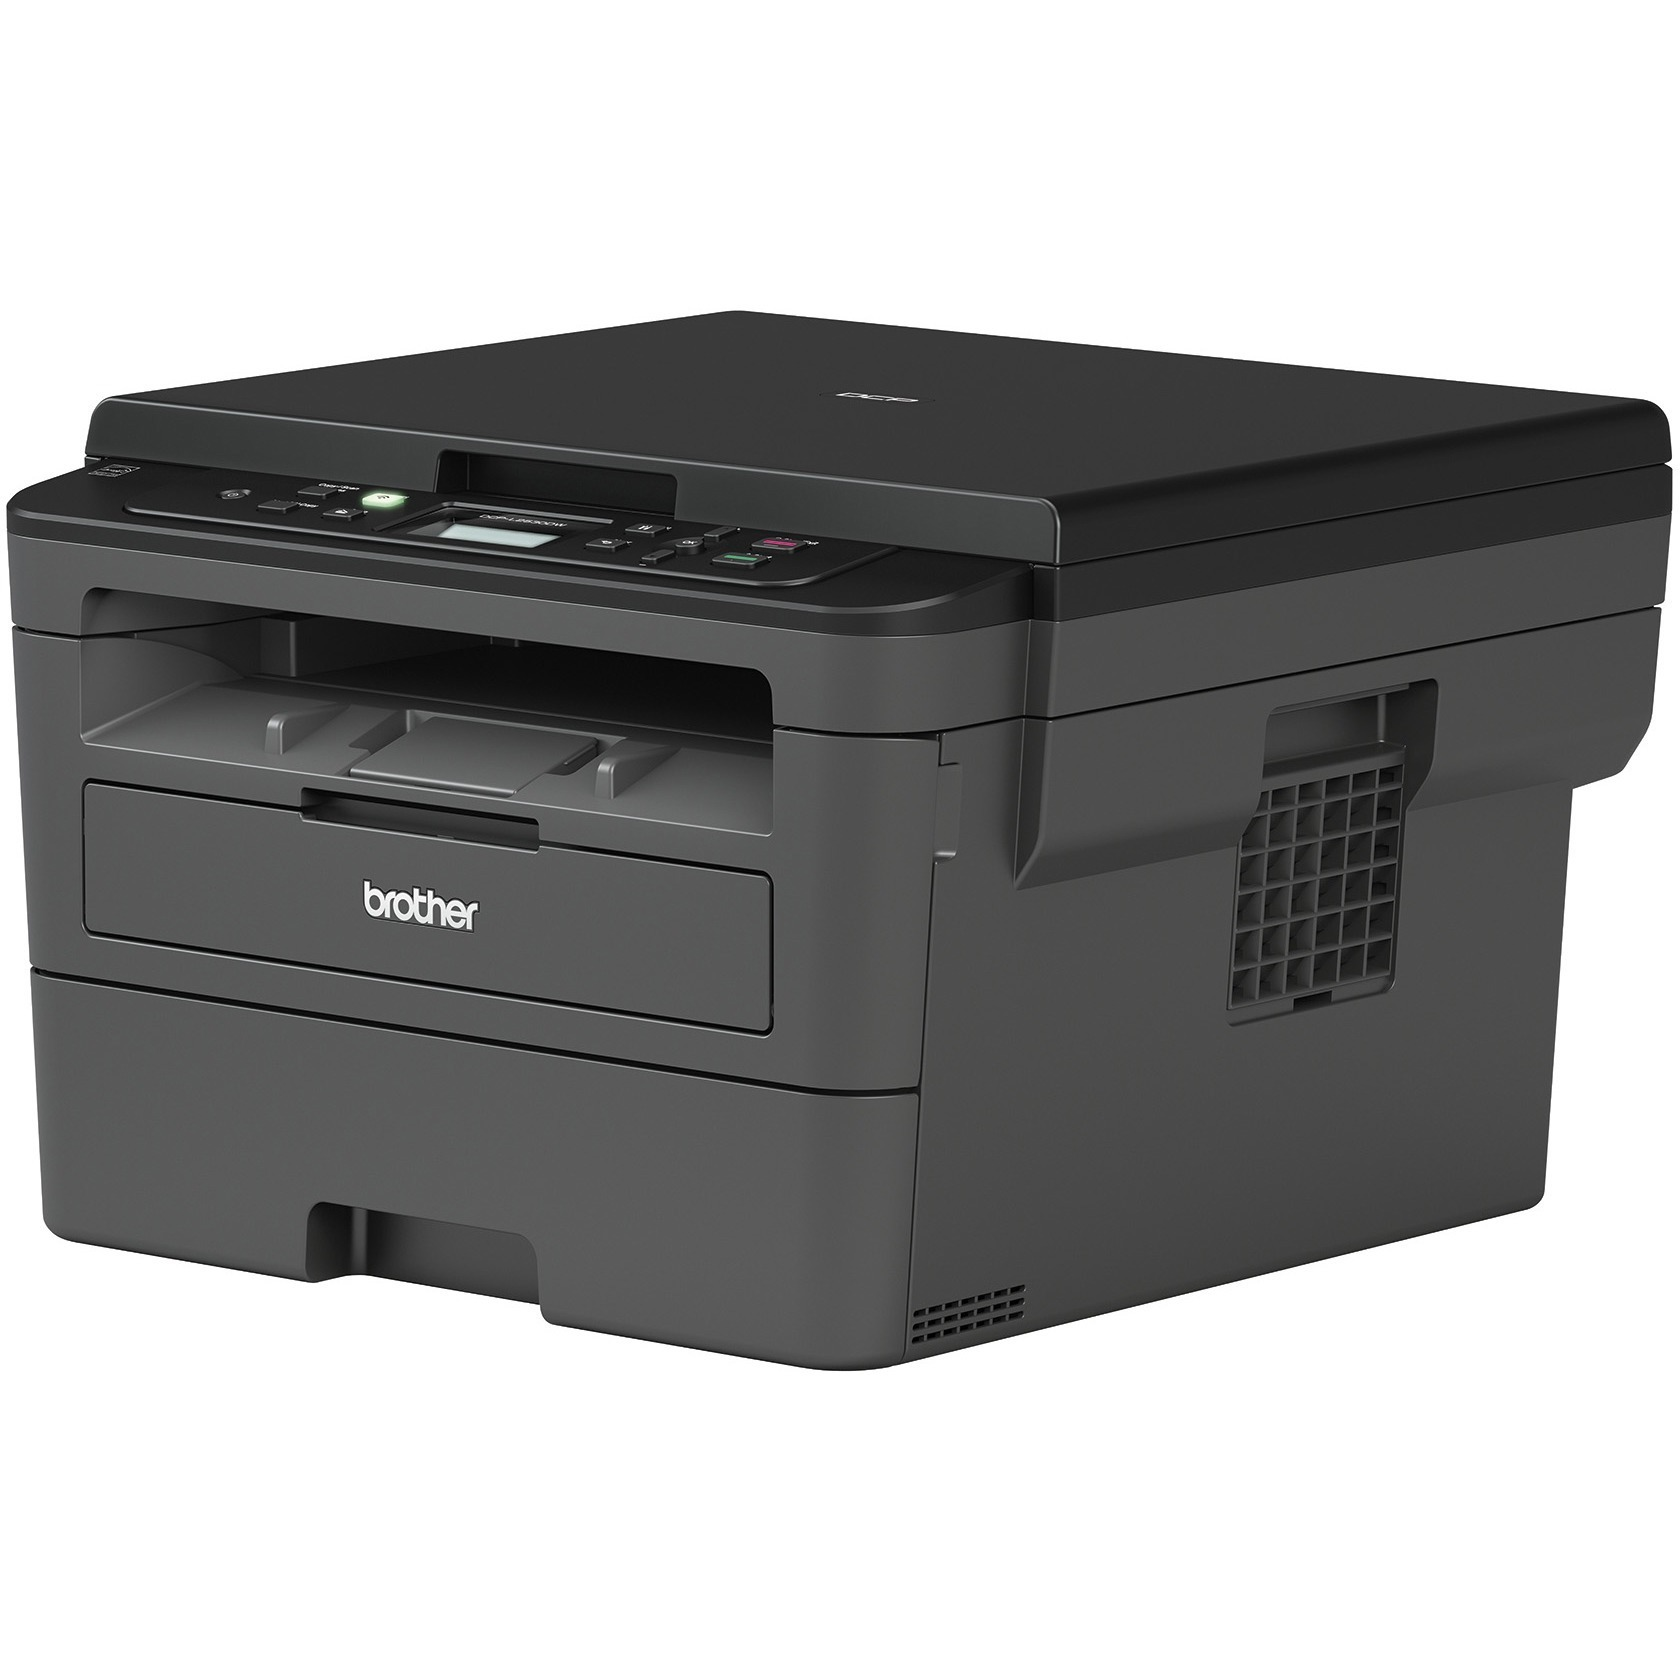 Brother DCP-L2530DW Laser Multifunction Printer - Monochrome